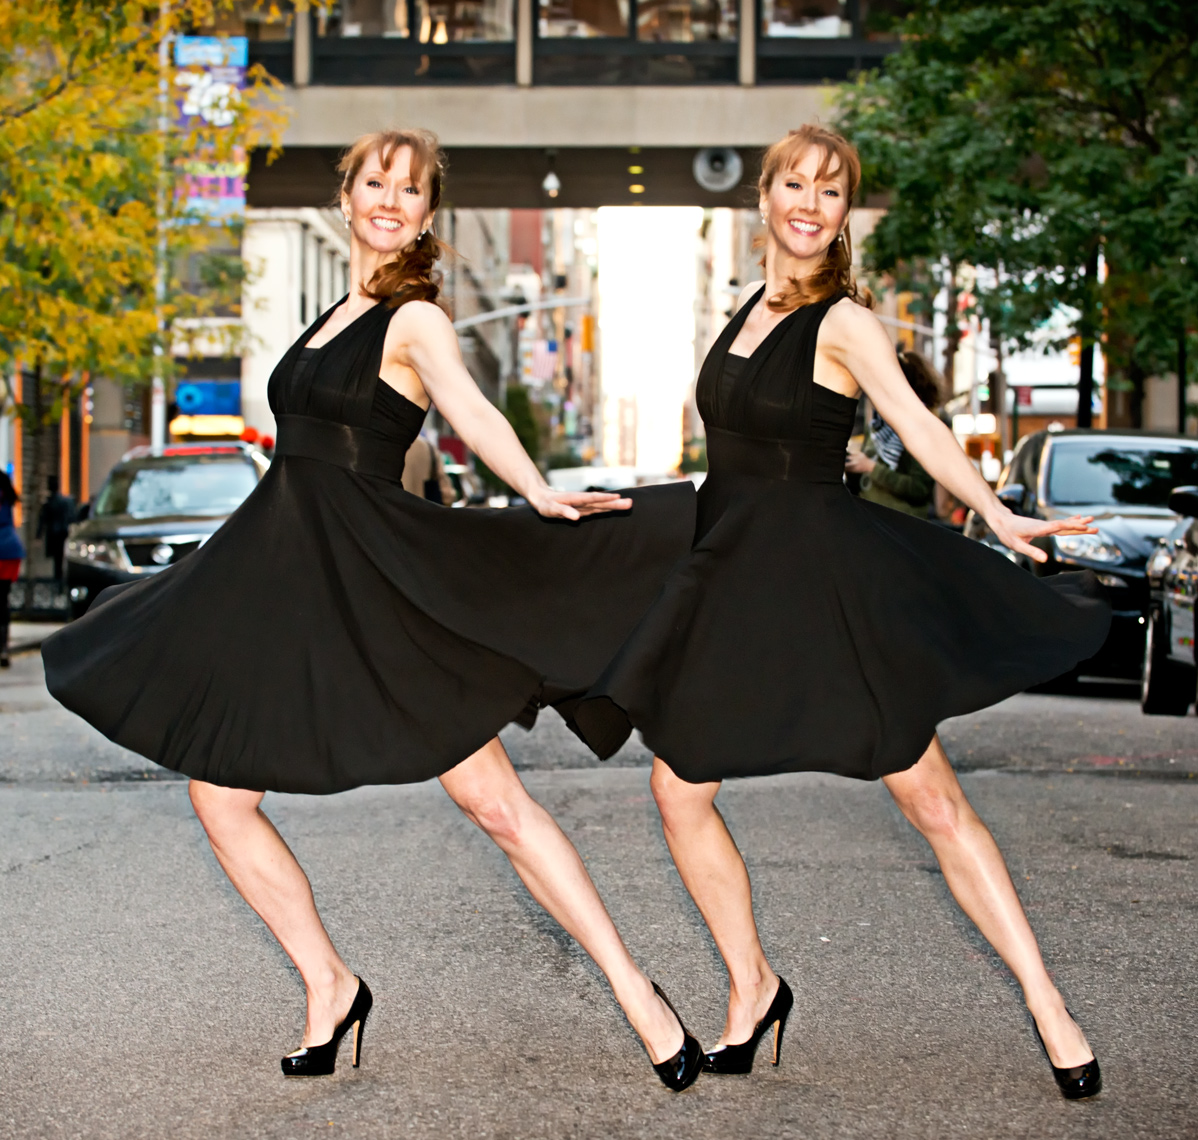 Katherine-and-Kimberly-Corp-dancing-photographed-by-Joe-Henson-Best-Actors-Headshot-Photographer-Corporate Portraits-NYC-NY-New-York-Washington-DC-Boston